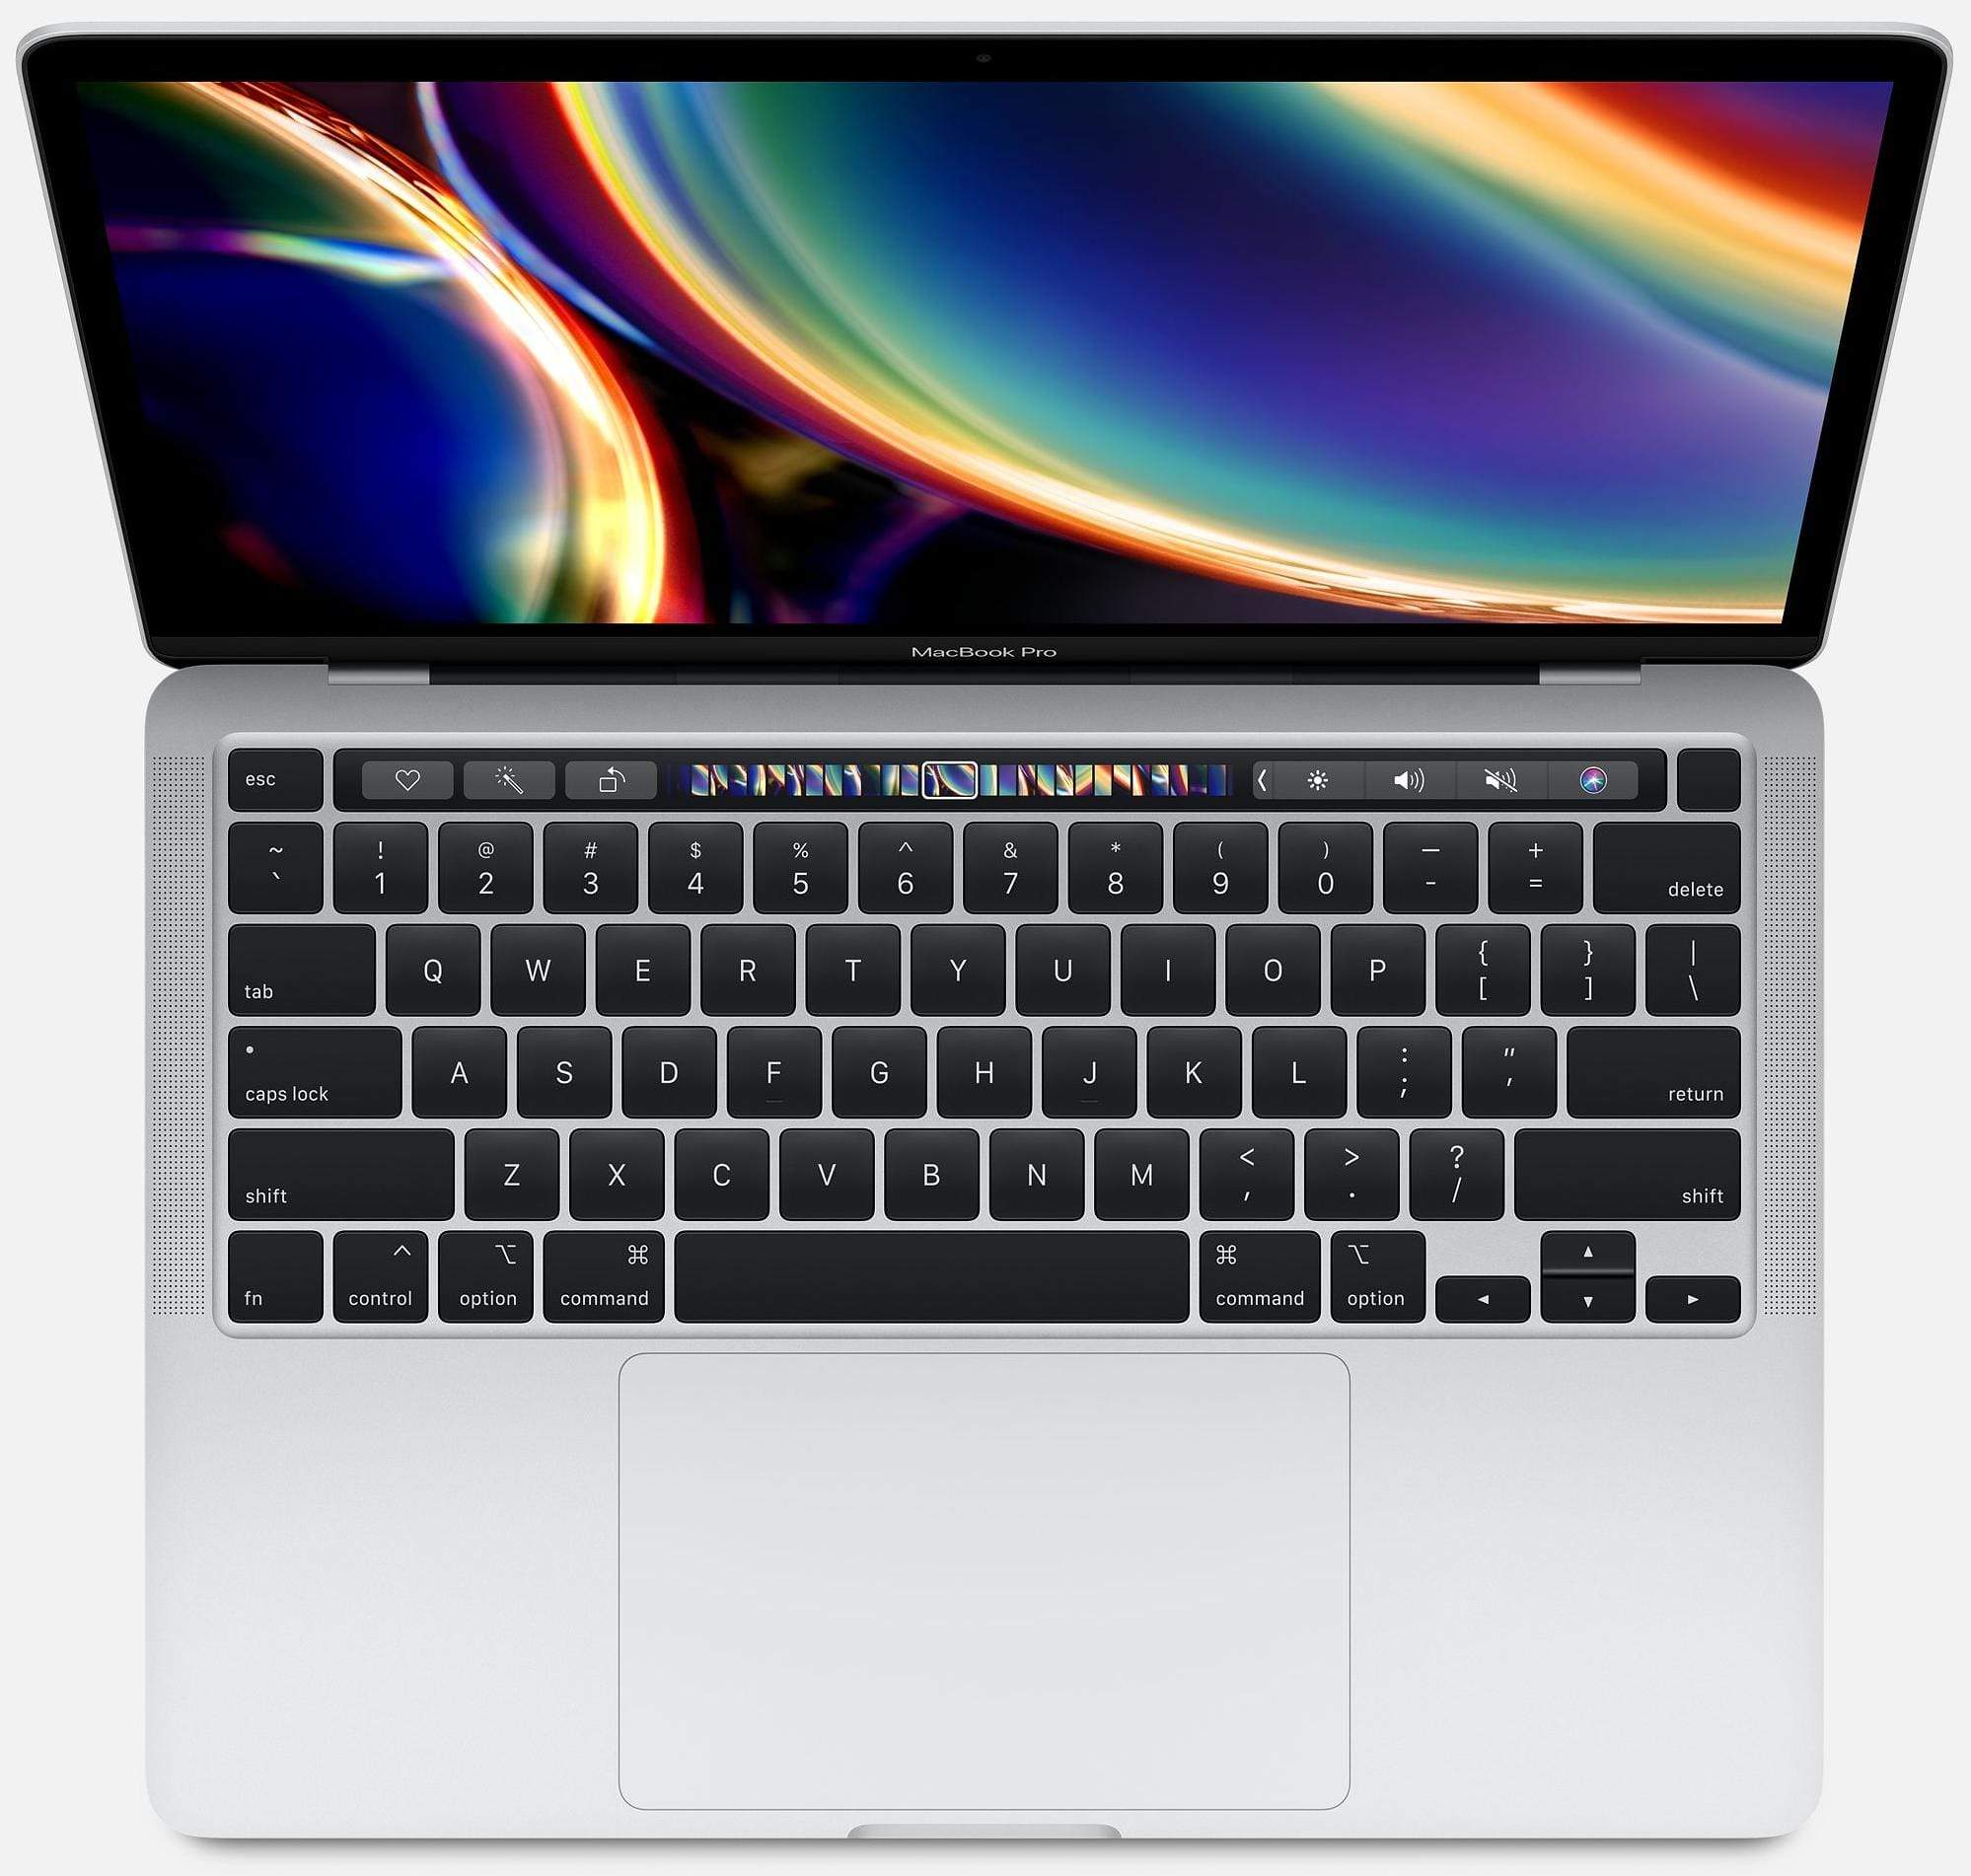 NEW Apple Macbook Pro 13 Inch Laptop 2020 Model (2.0GHz quad‑core 10th‑generation Intel Core i5, 16GB, 512GB SSD) - iStock BD